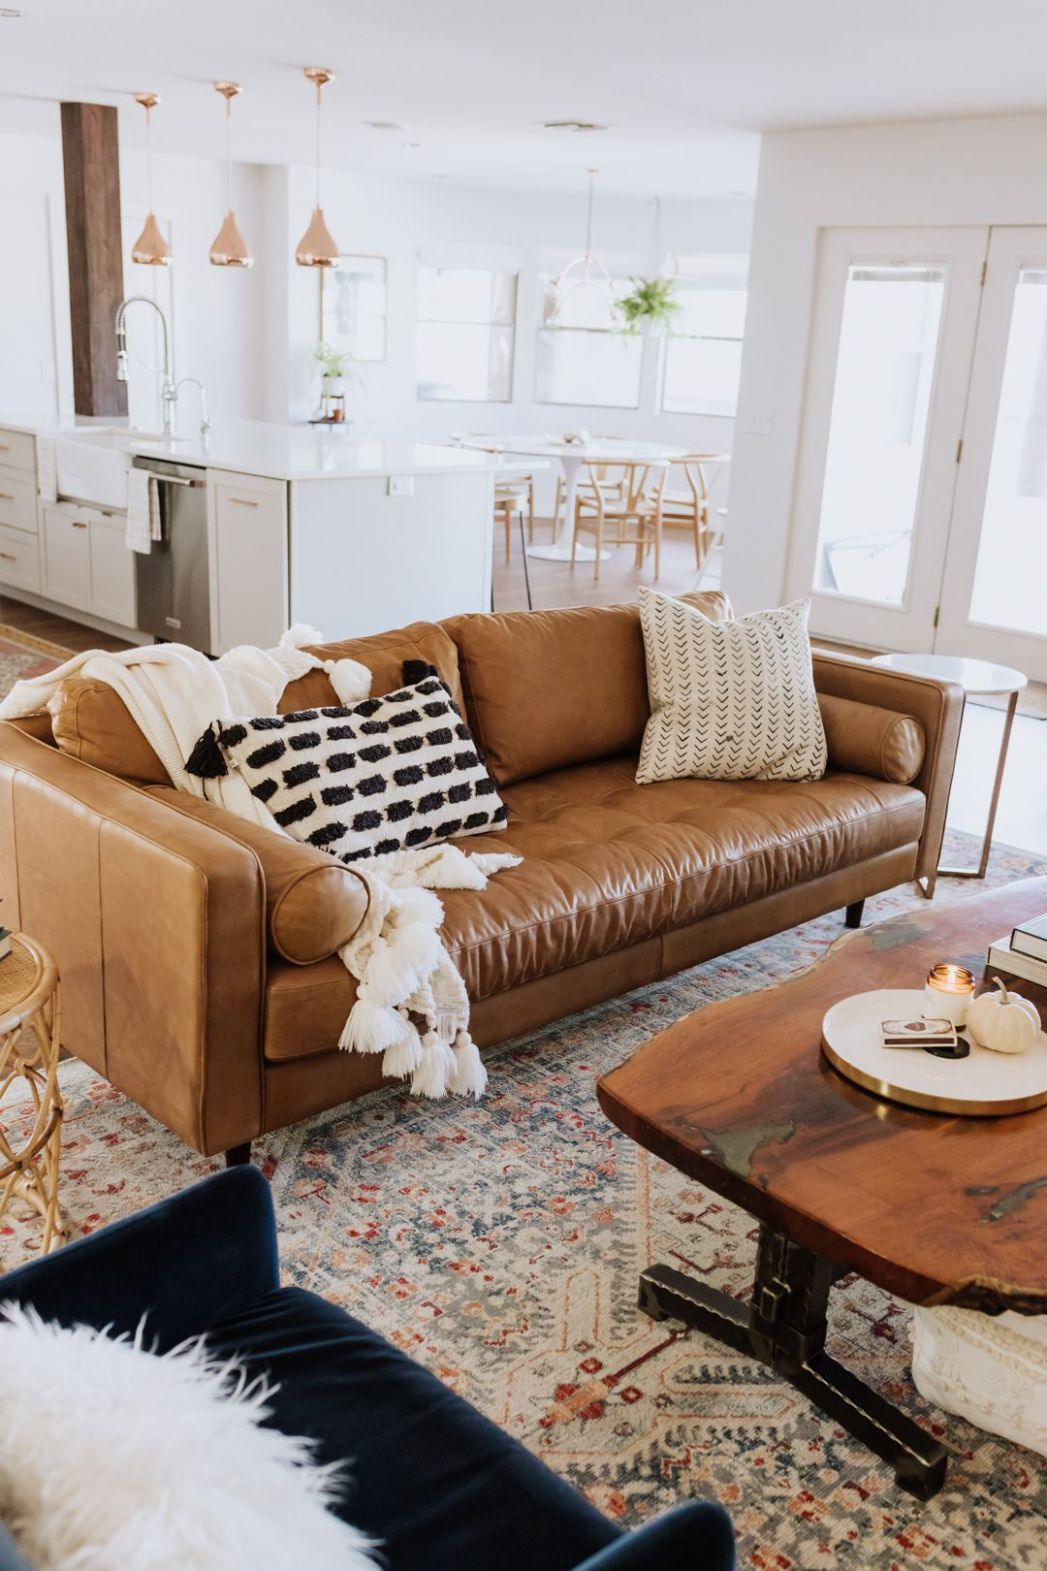 the ldl home: our living room reveal | Living room decor brown ..